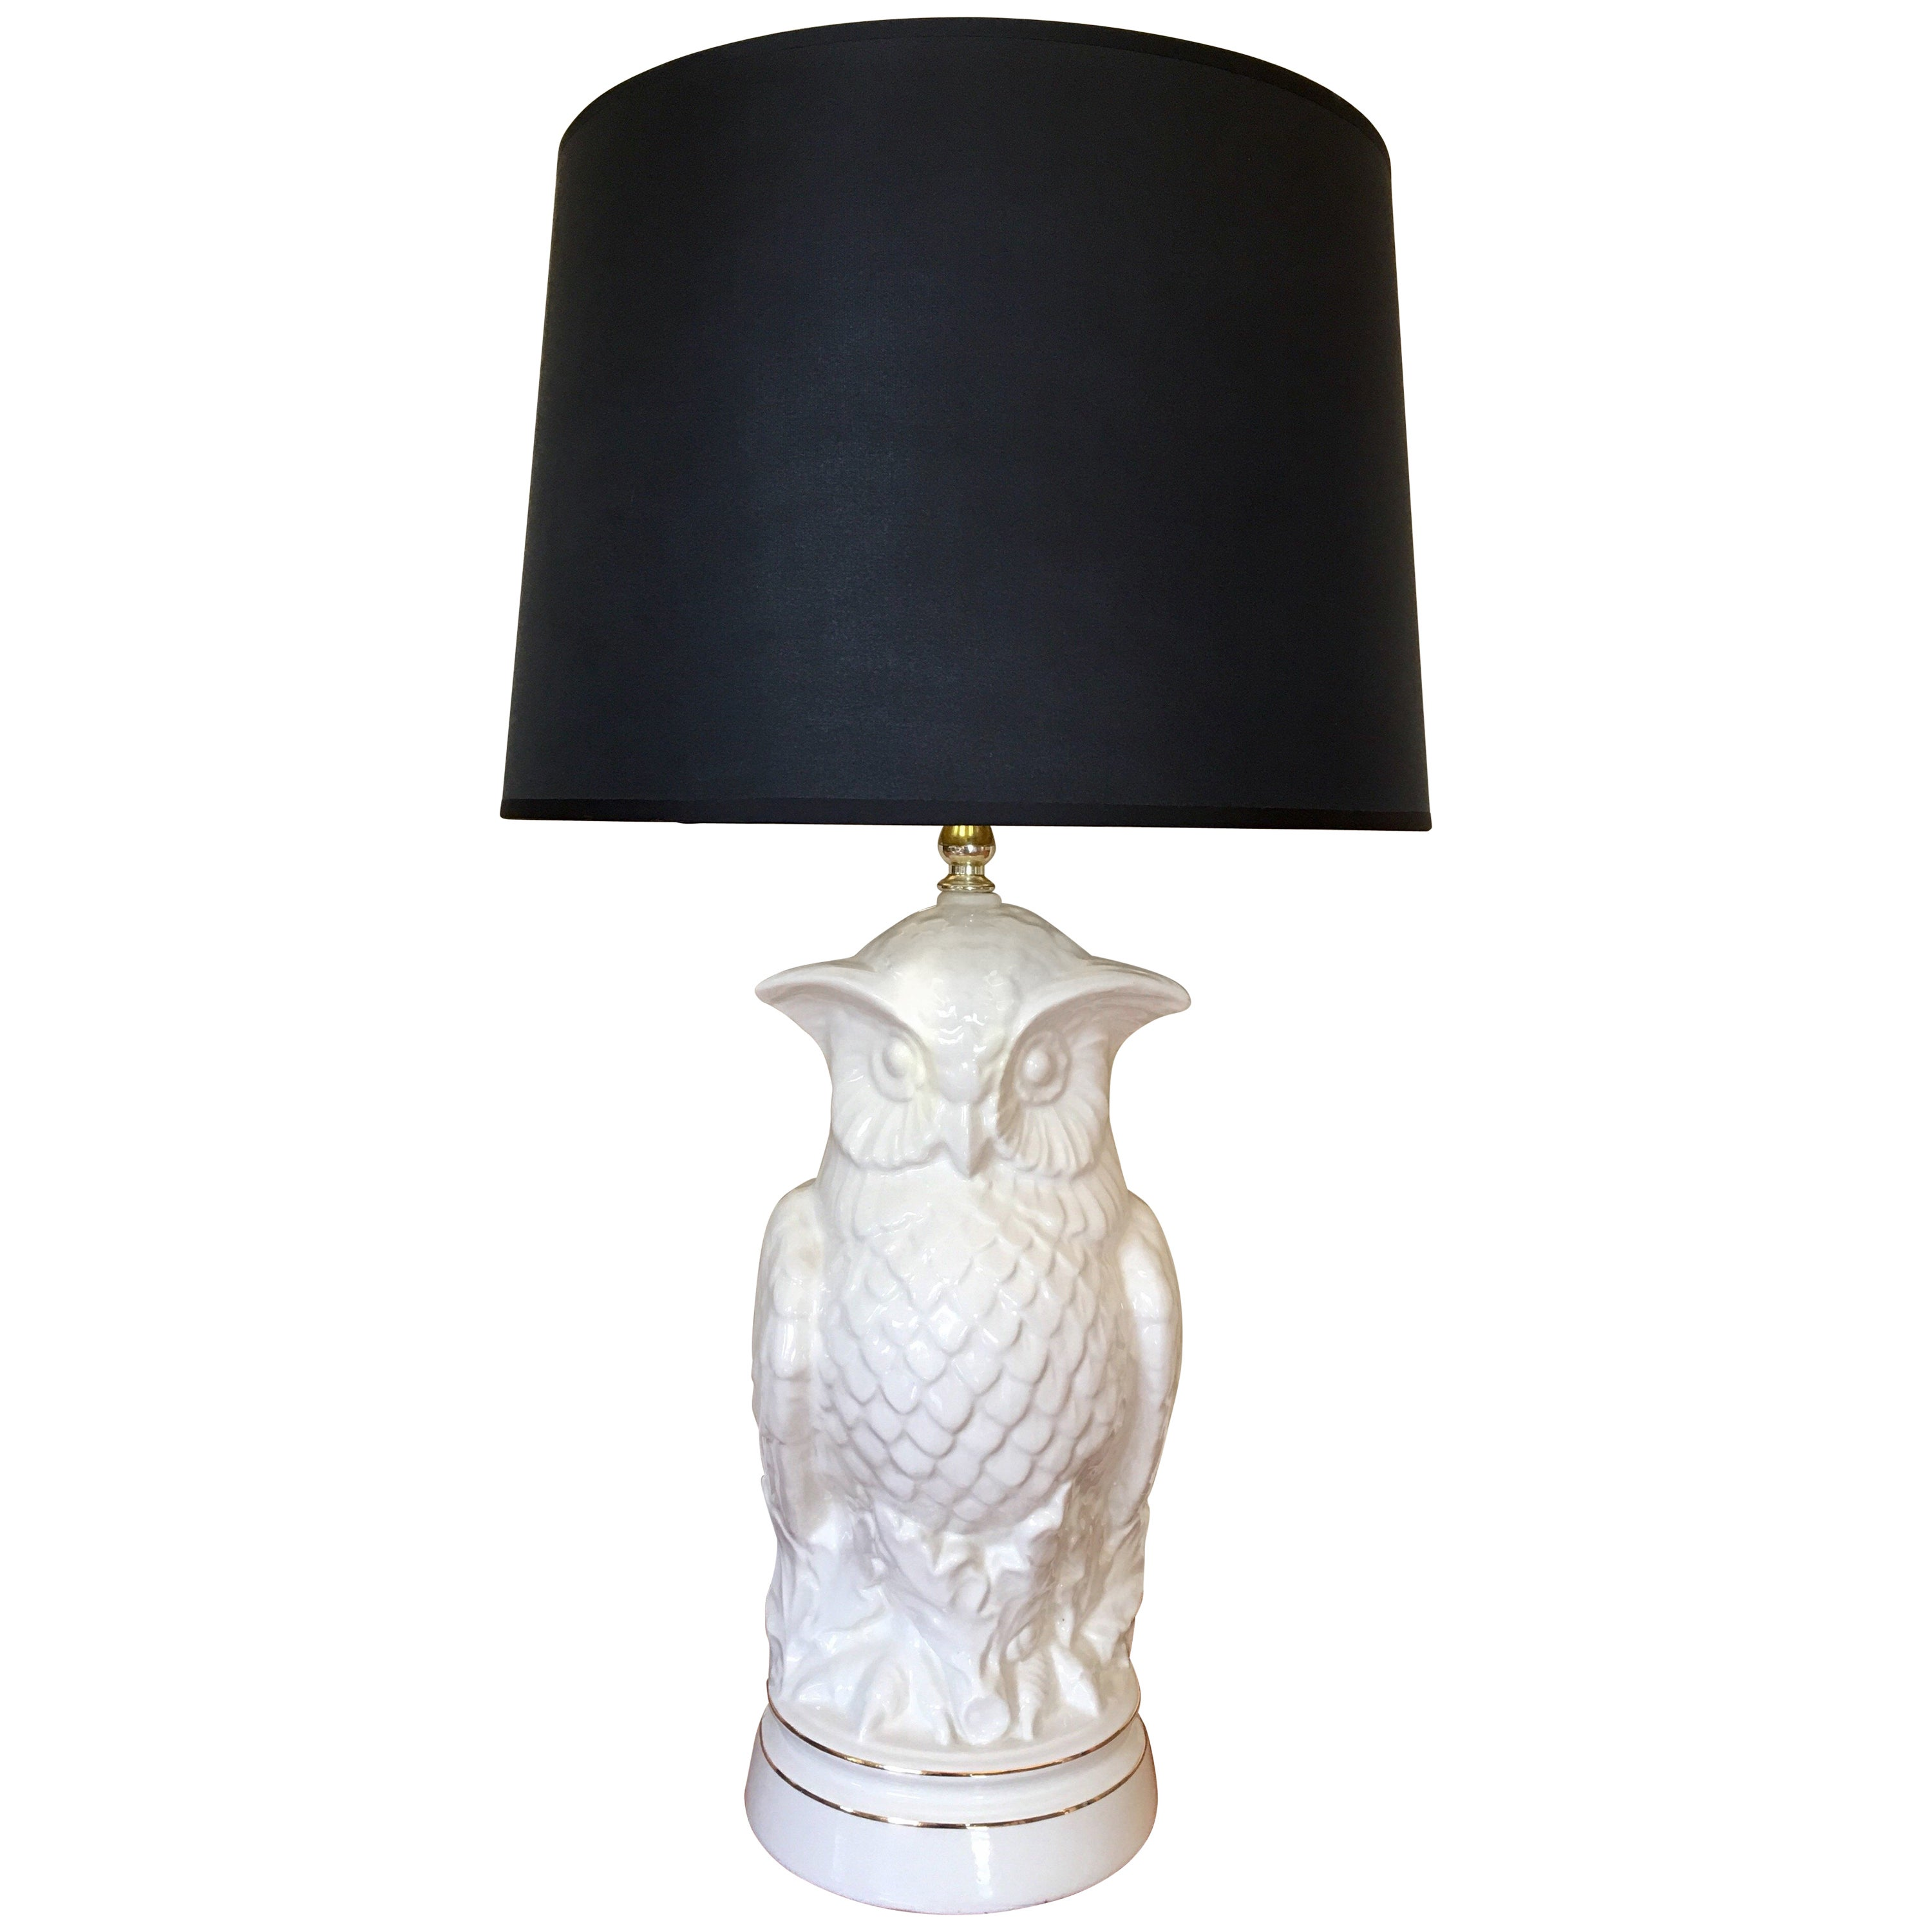 Mid-Century Modern Sculptural Owl Table Lamp